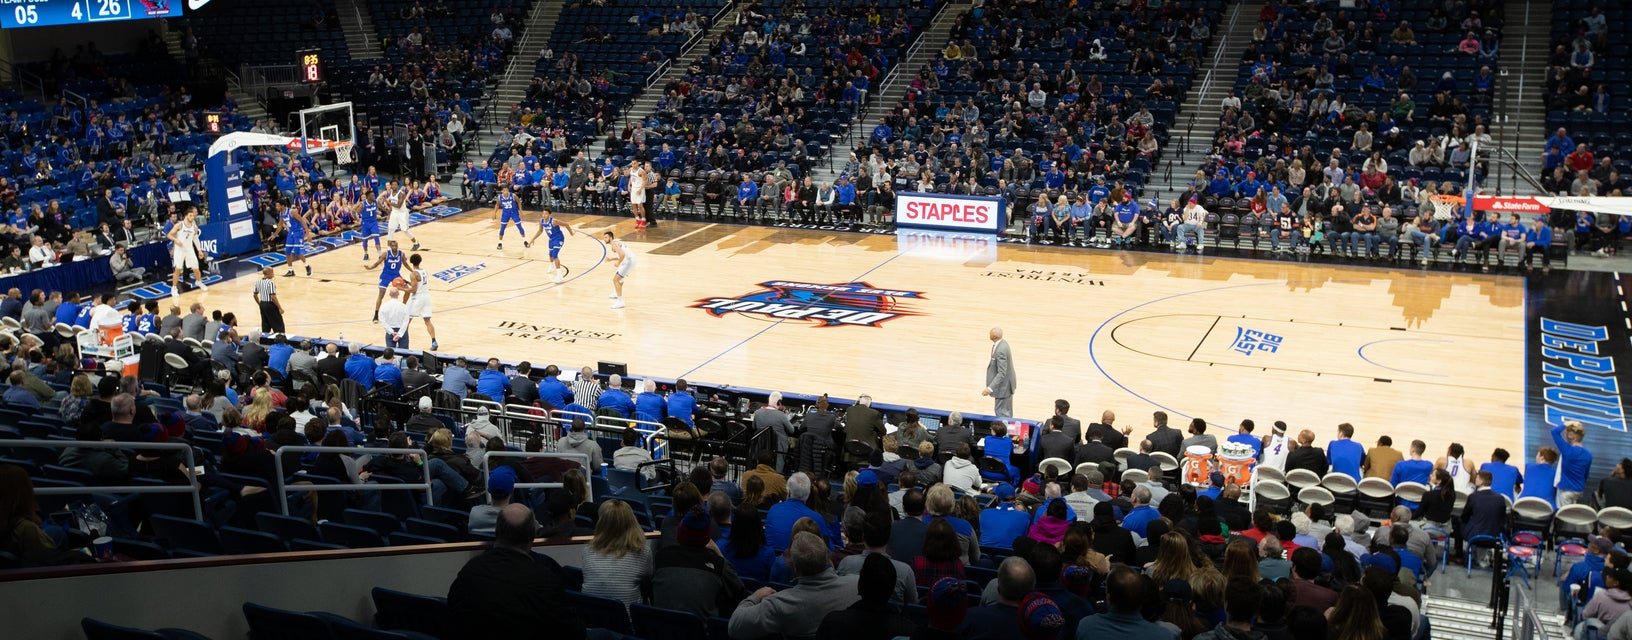 DePaul Basketball Tickets